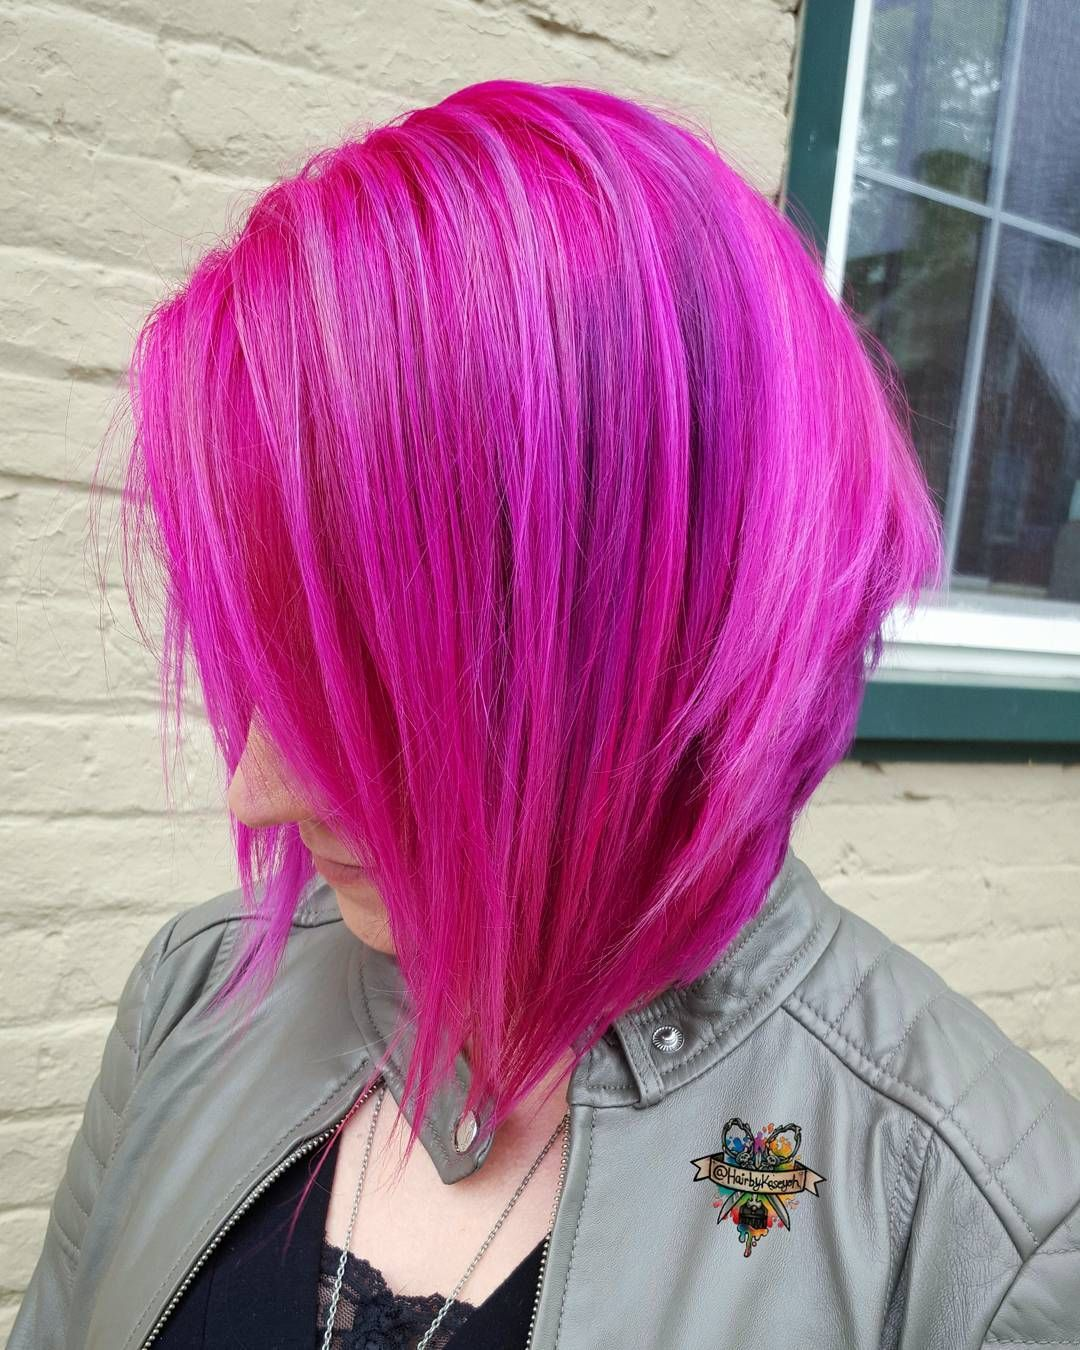 Pin By Amber Spinks On Hair Color Ideas Pinterest Hair Coloring